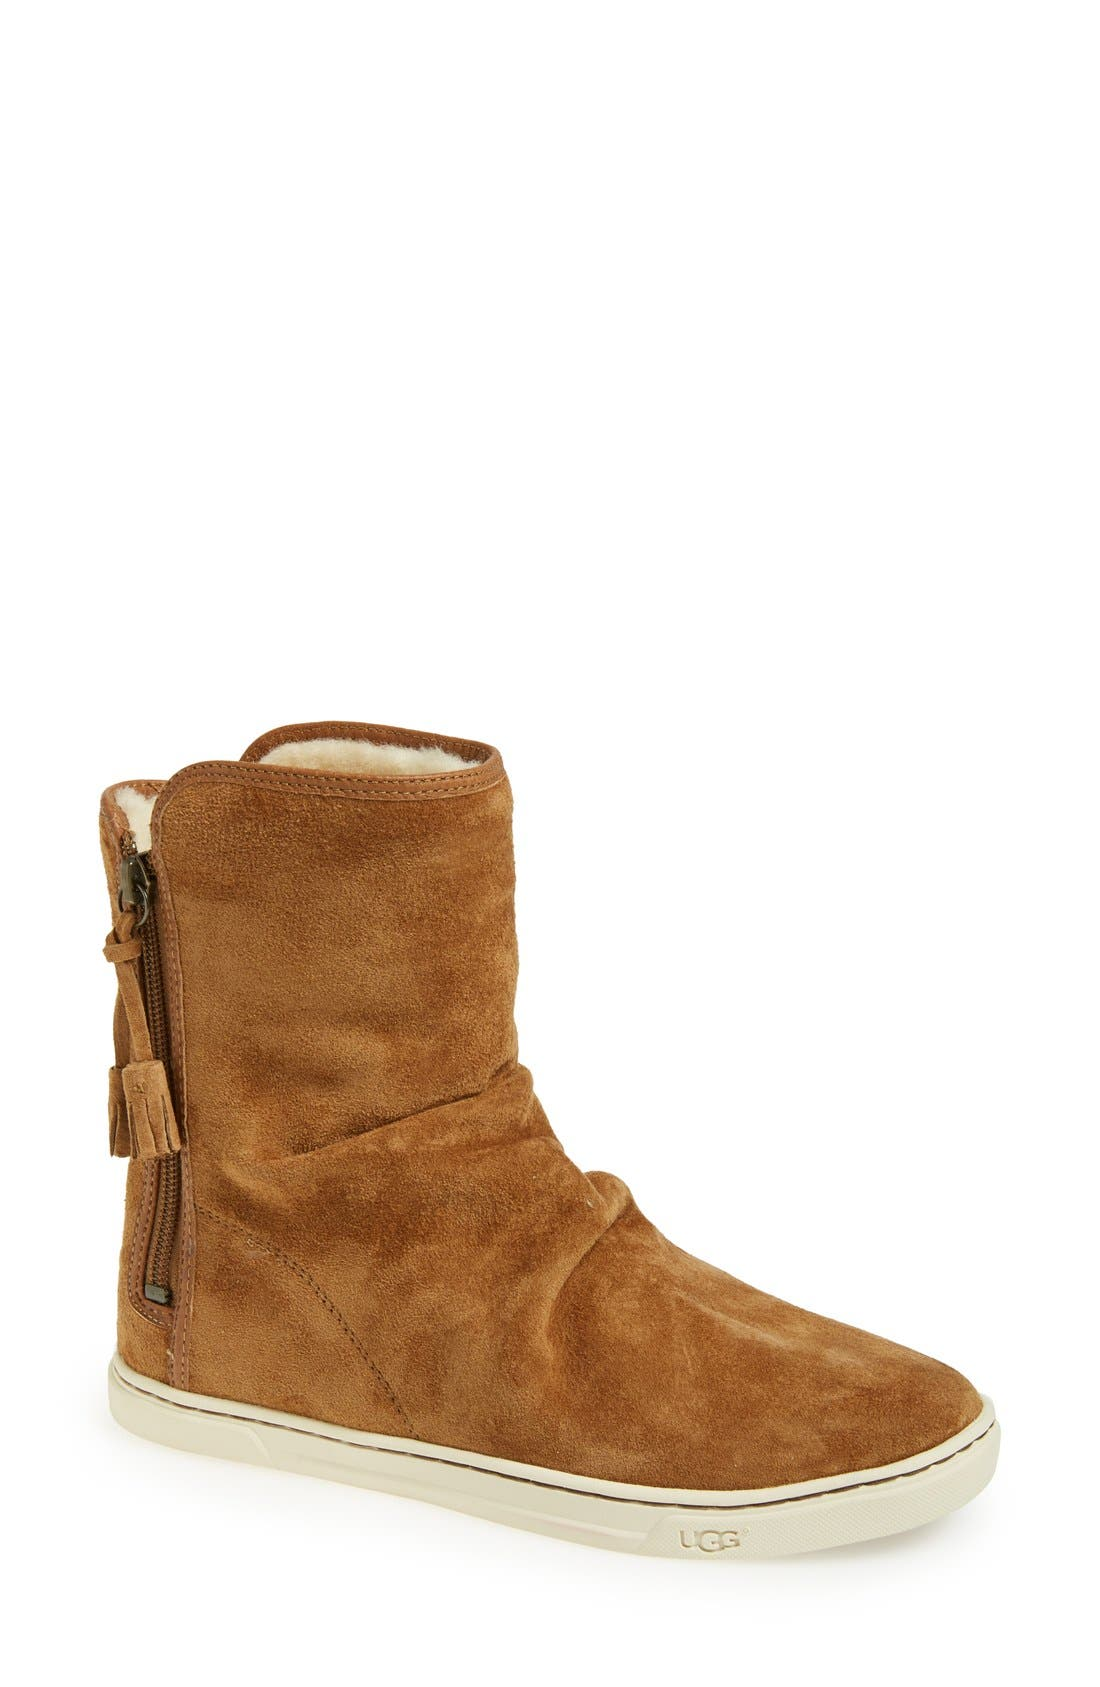 Alternate Image 1 Selected - UGG® Australia 'Becky' Water Resistant Suede Boot (Women)